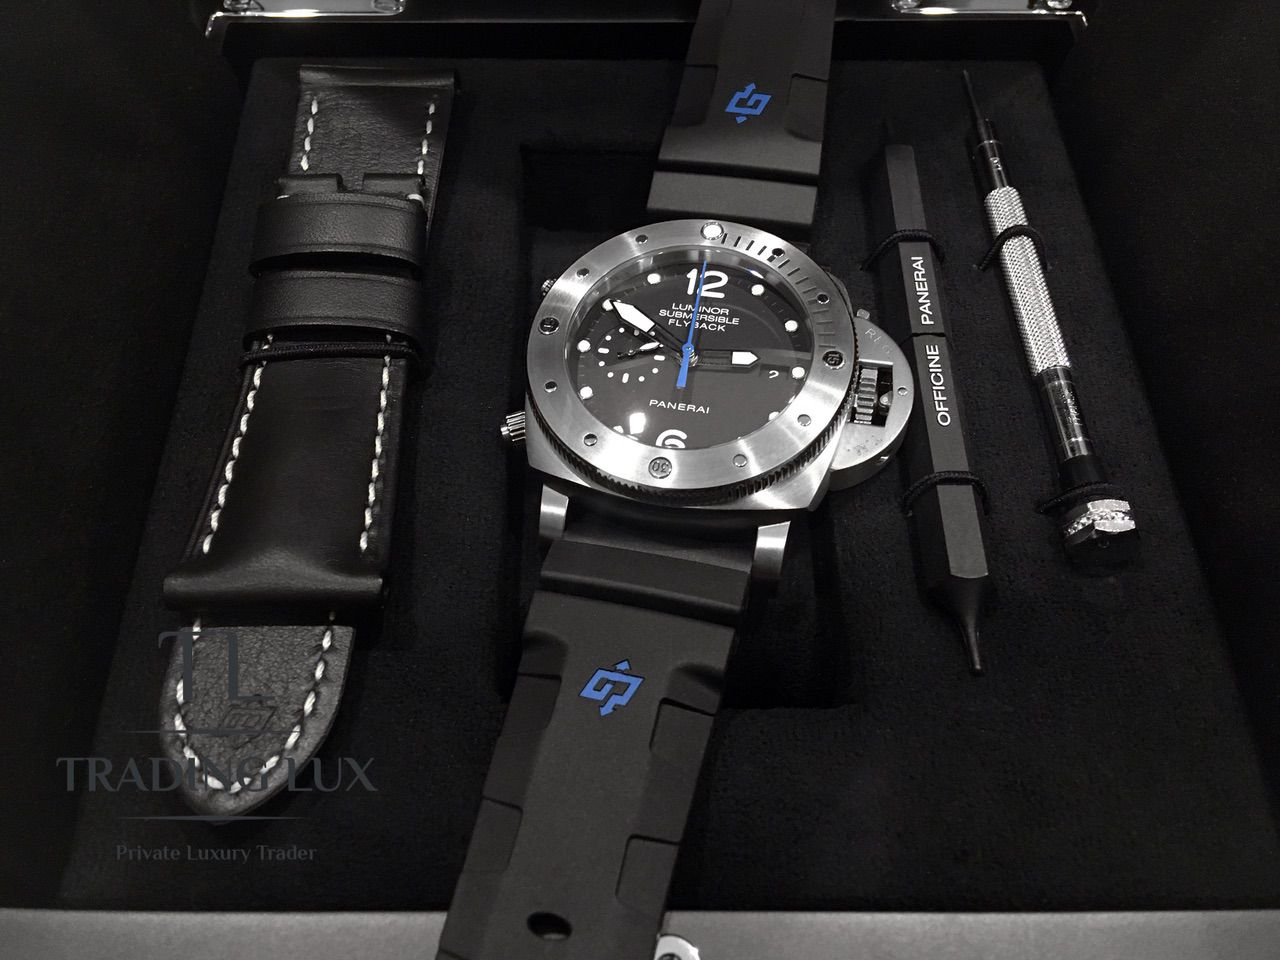 Panerai-Submersible-Chrono-PAM00614-21